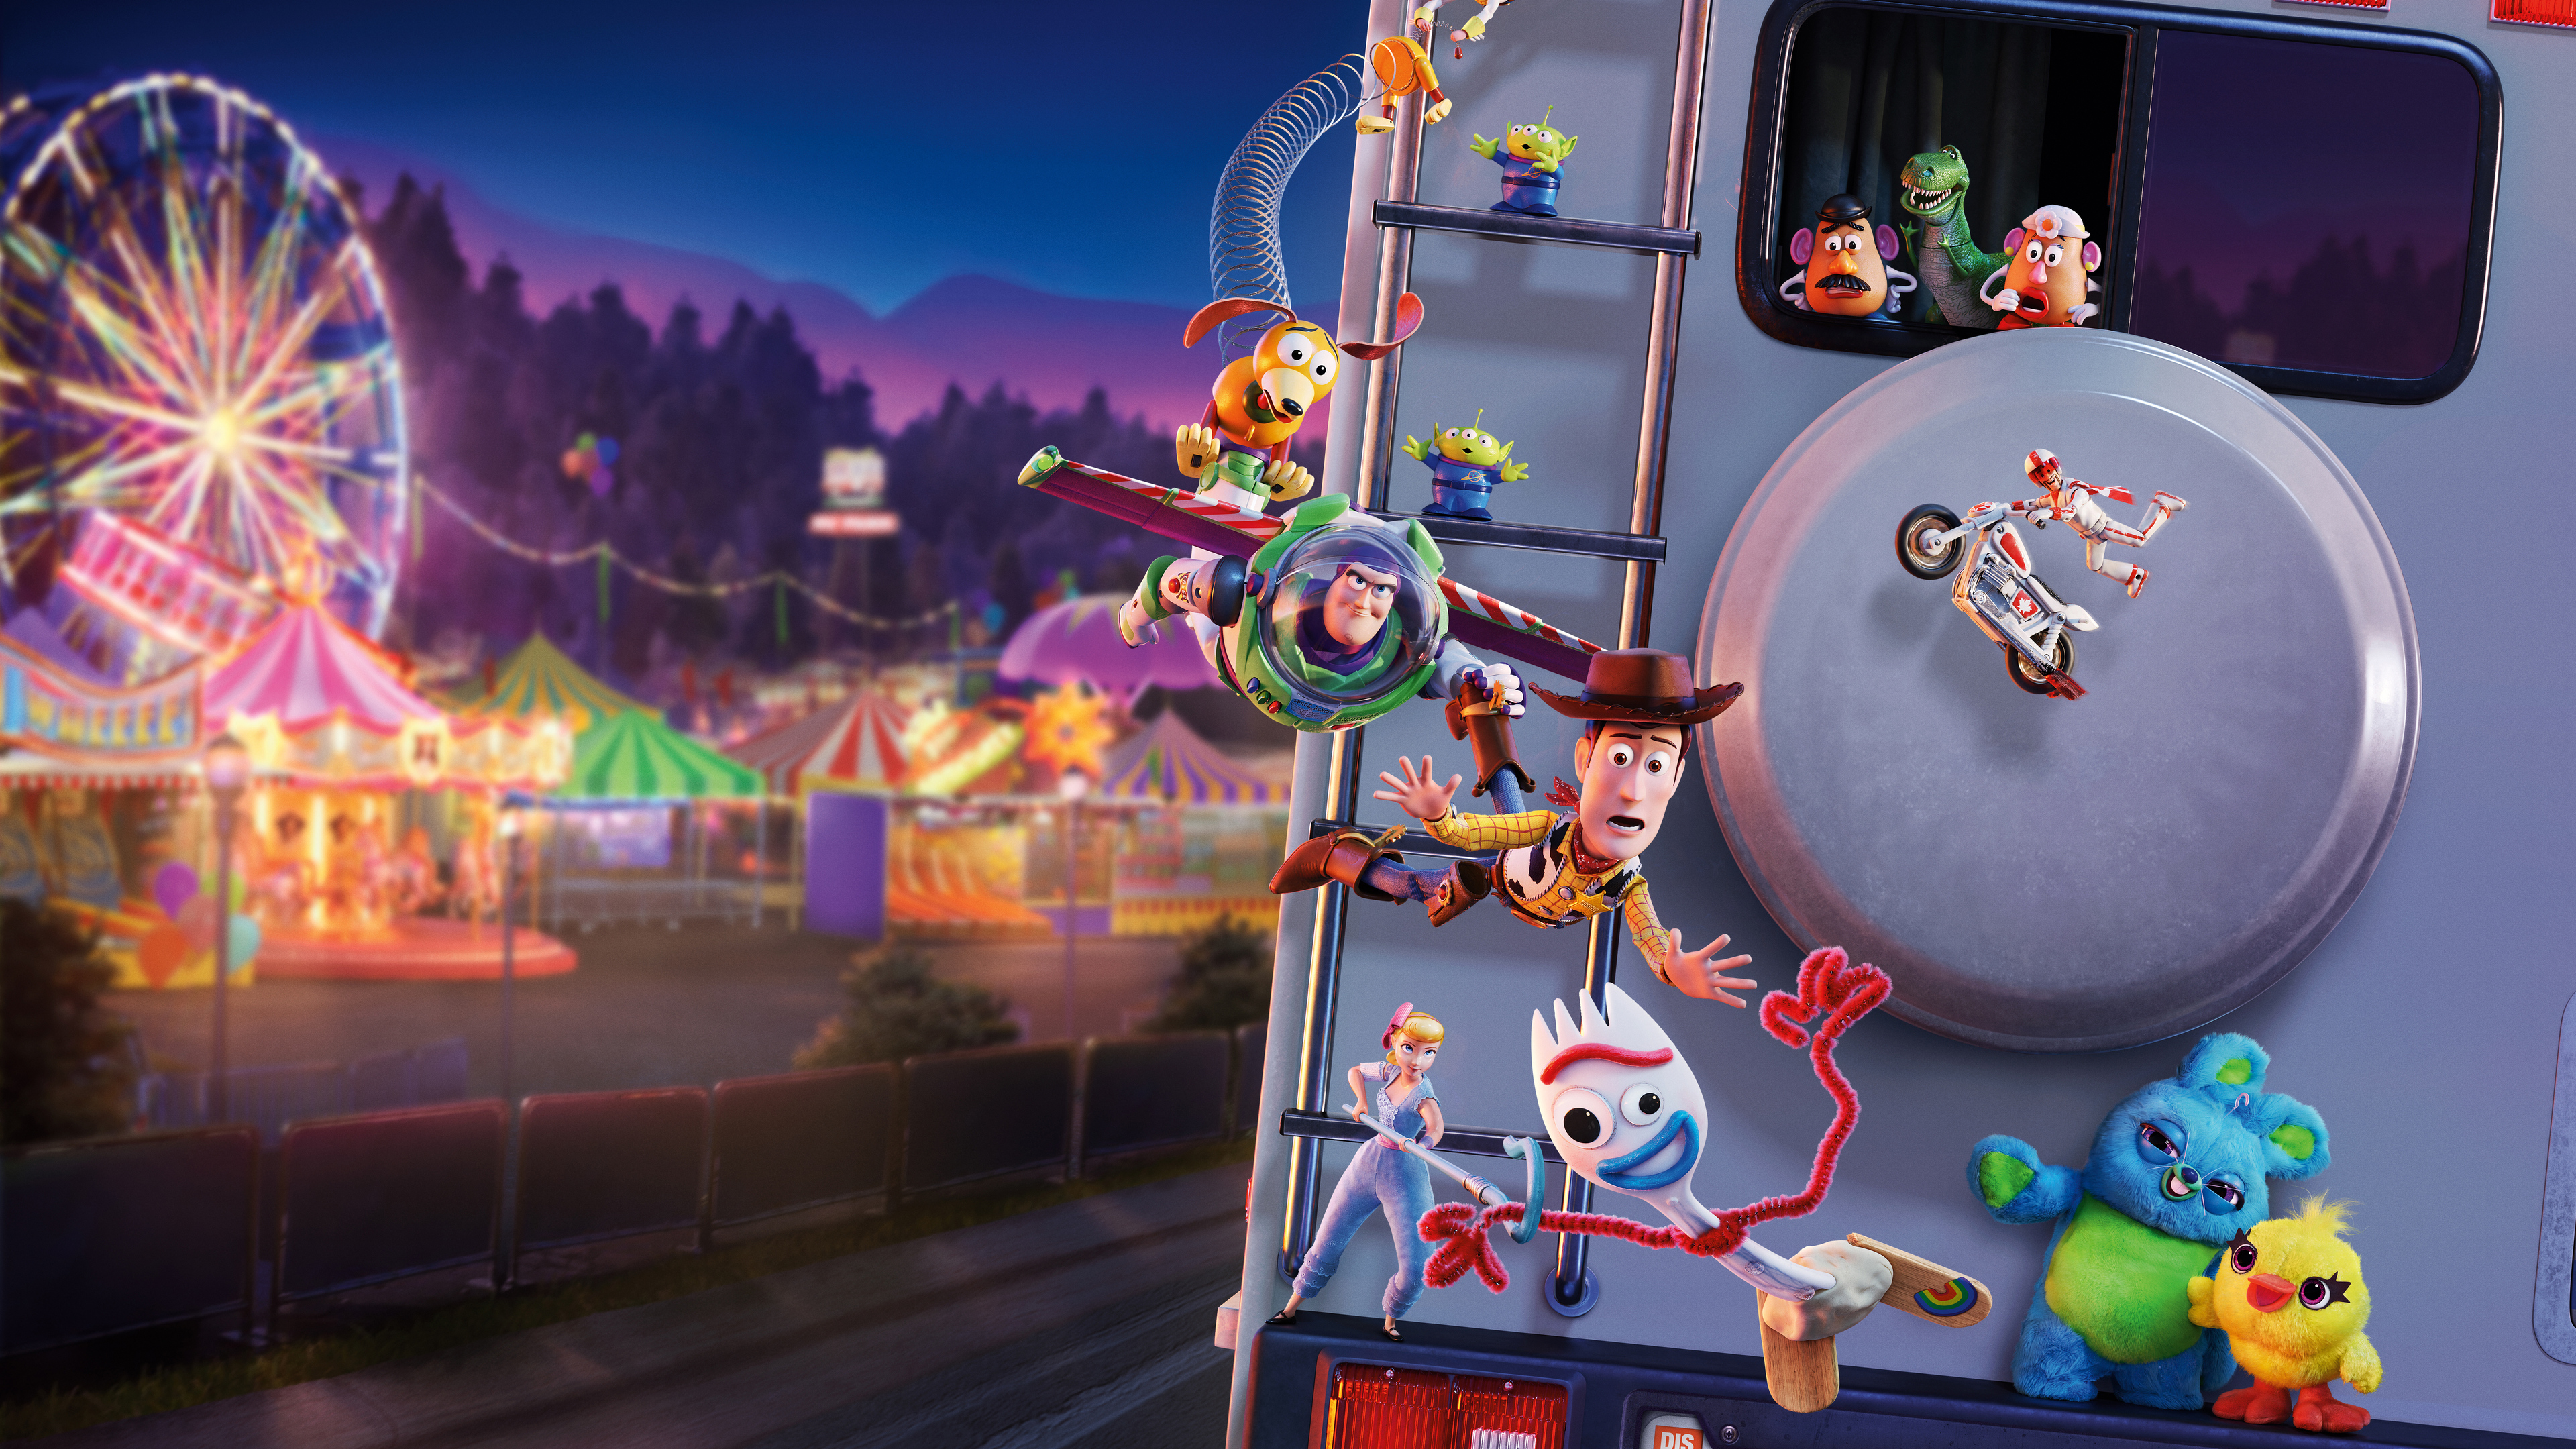 toy story 4 4k 1560535073 - Toy Story 4 4k - toy story 4 wallpapers, movies wallpapers, hd-wallpapers, animated movies wallpapers, 4k-wallpapers, 2019 movies wallpapers